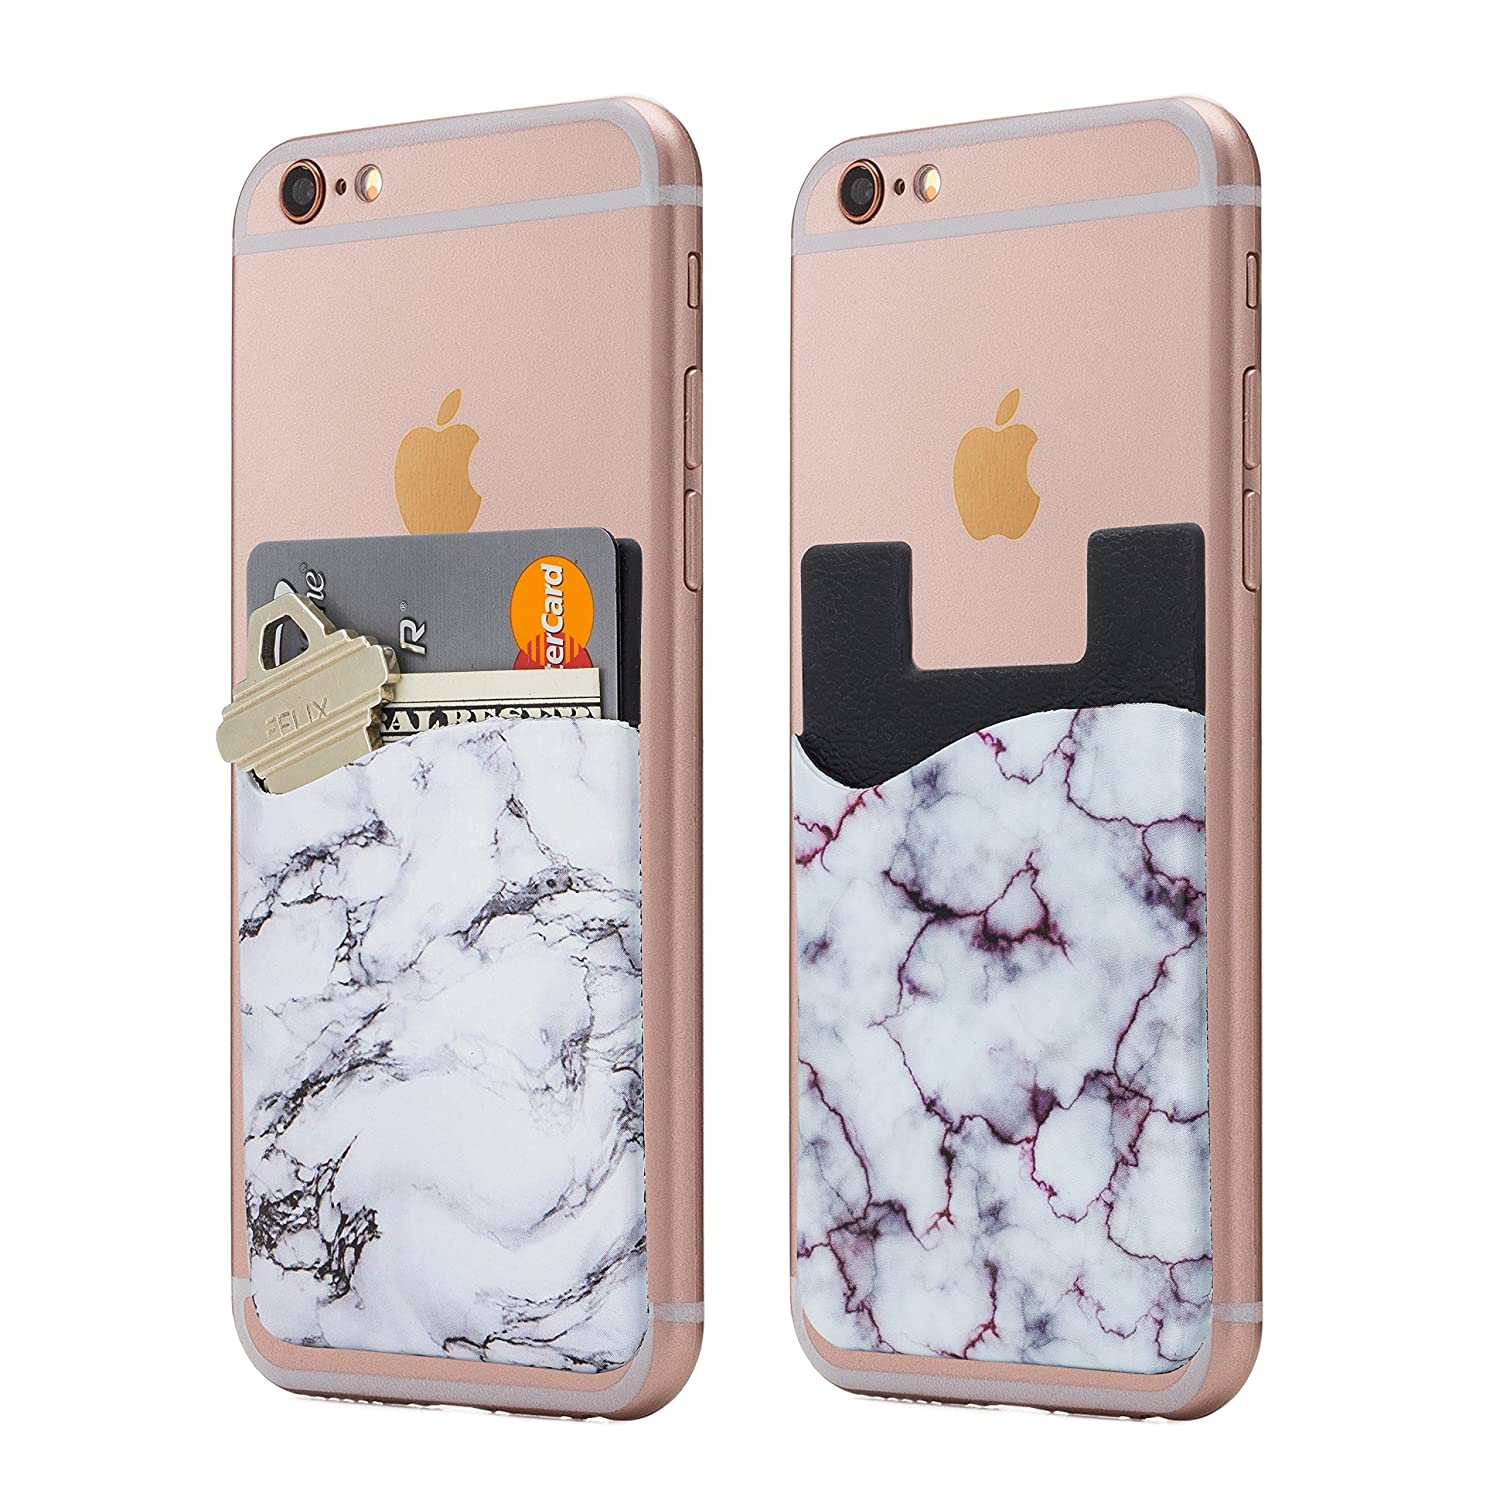 (Two) Marble cell phone stick on wallet card holder phone pocket for iPhone, Android and all smartphones. (PinkBlack) Cardly